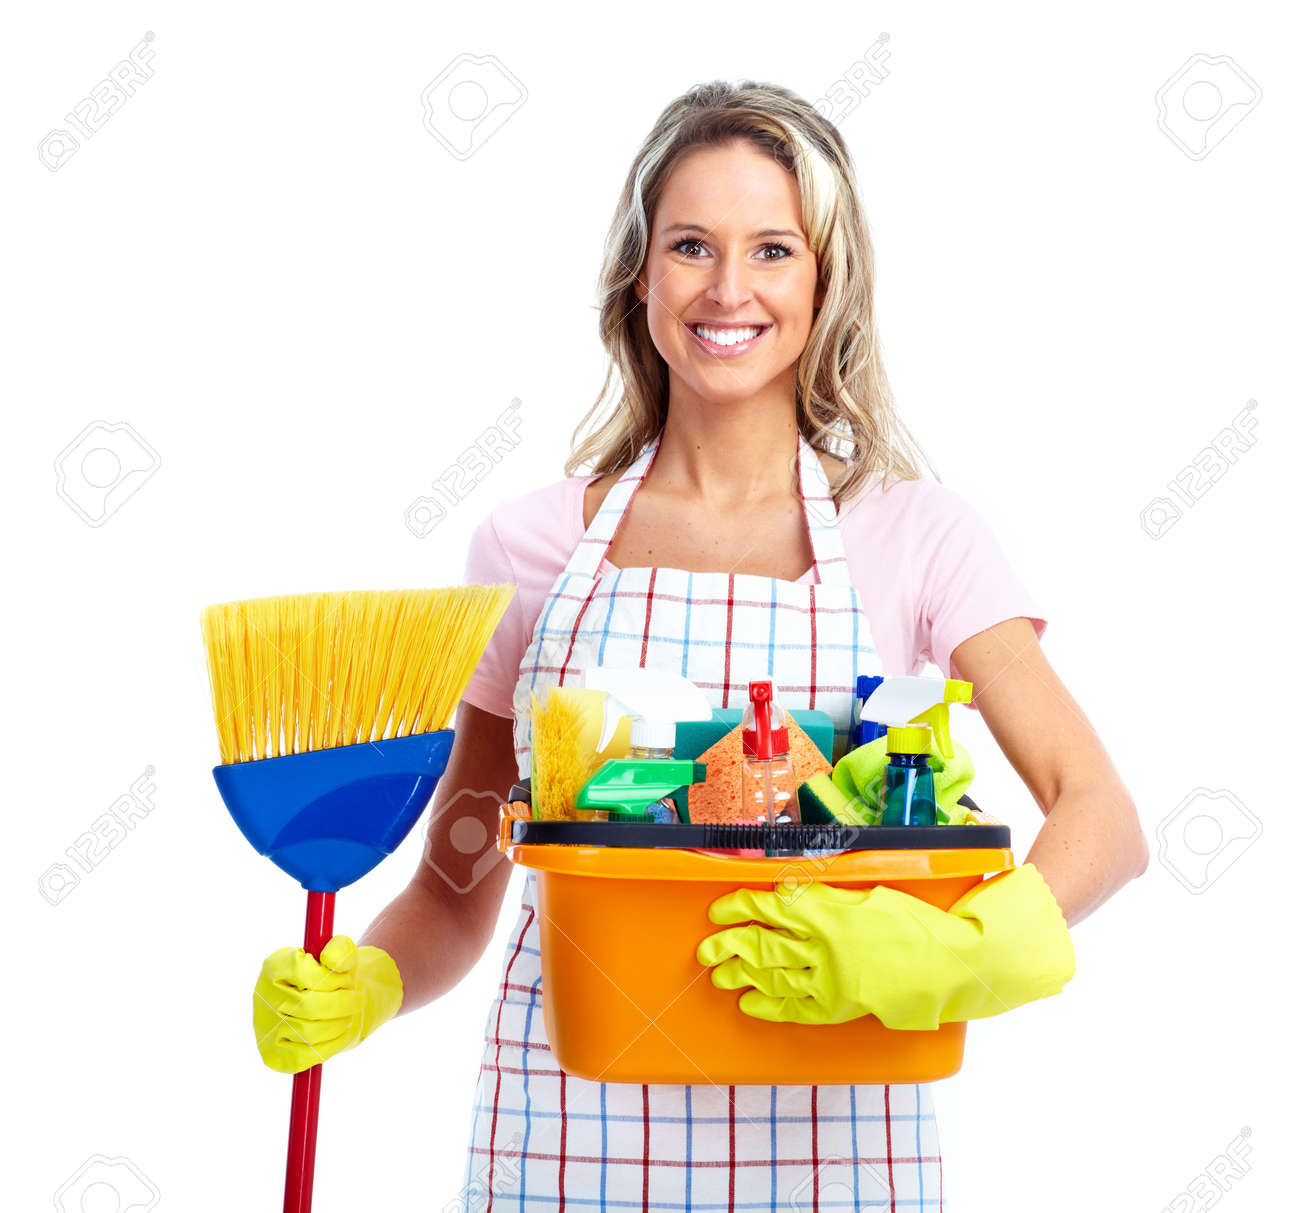 Young smiling cleaner woman. Stock Photo - 12378863